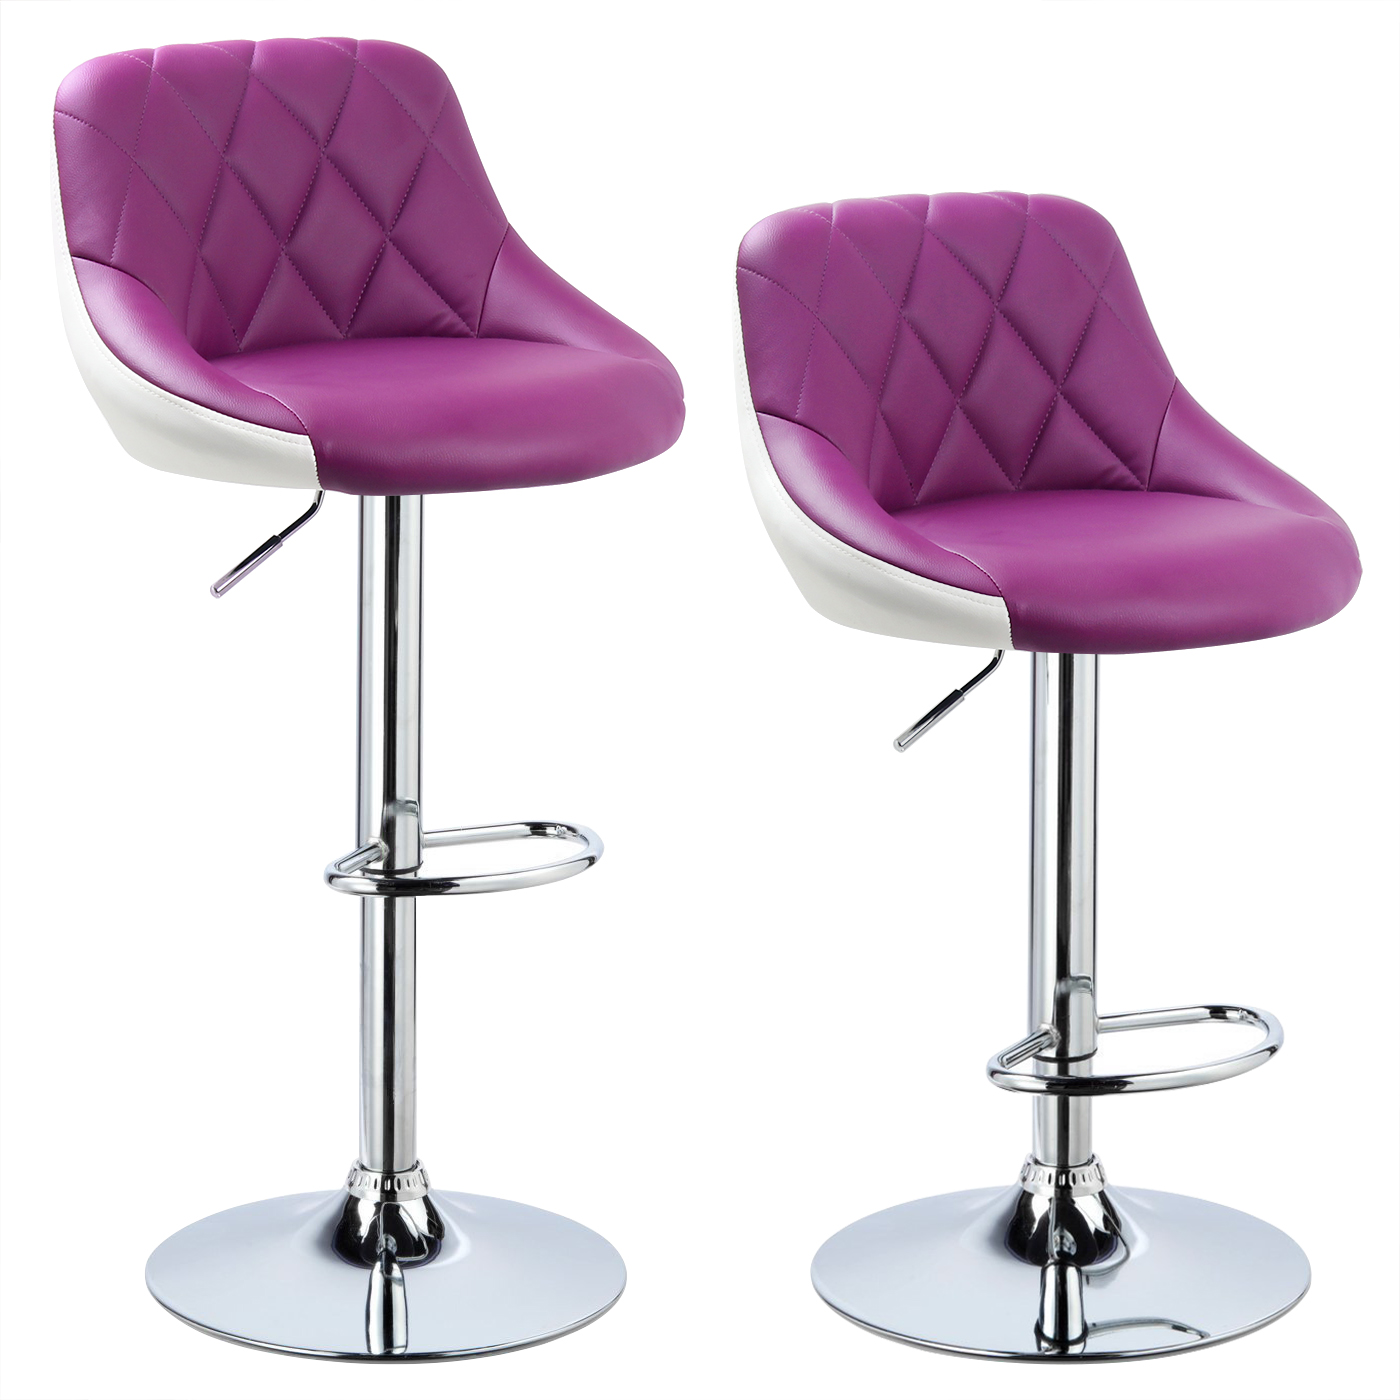 2 x bar stools faux leather breakfast kitchen swivel stool chair with back u030 ebay. Black Bedroom Furniture Sets. Home Design Ideas